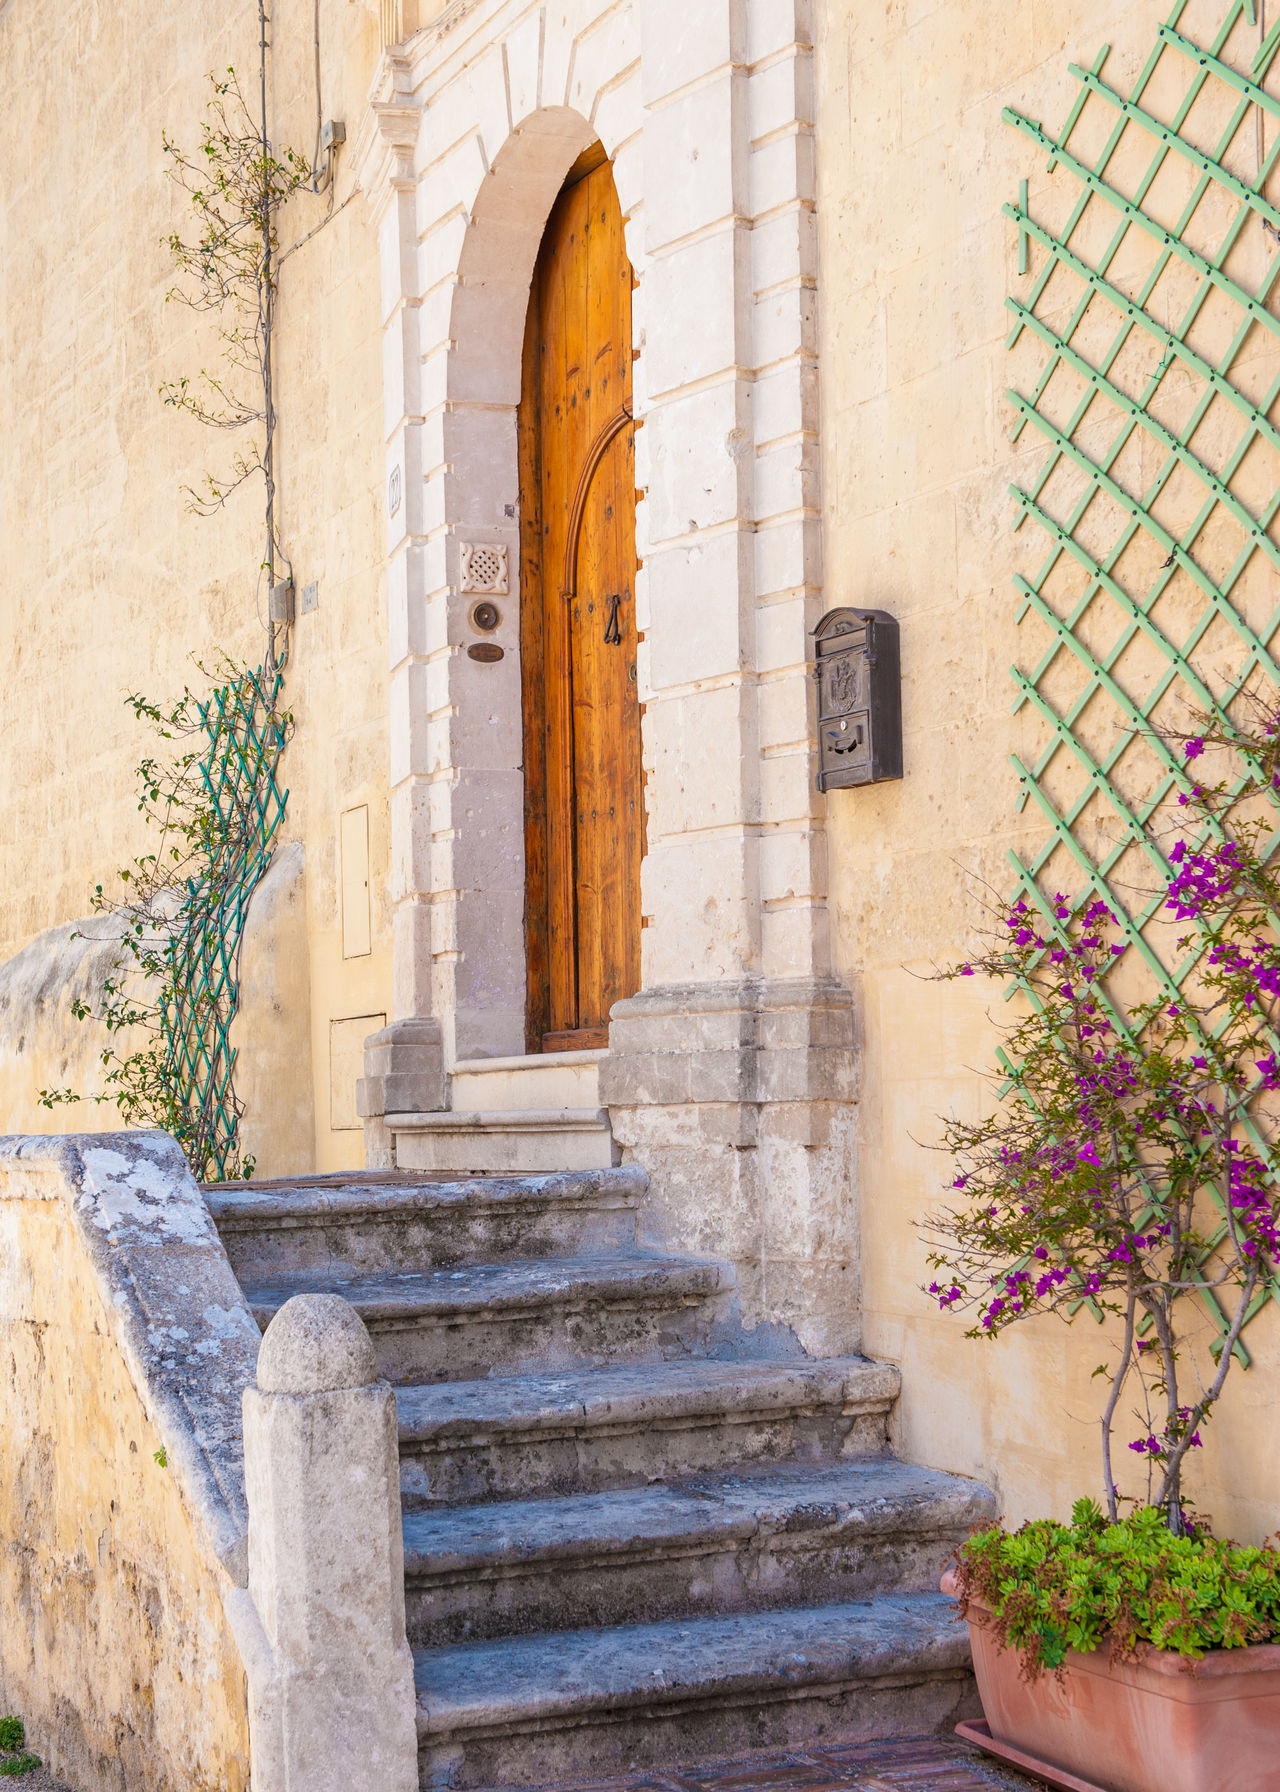 Walking in Matera Arches Architecture Creepers Doors DoorsAndWindowsProject Entrance Green Color Italy Matera Nature No People Outdoors Plant Postbox Potted Plans Steps And Staircases Wall - Building Feature